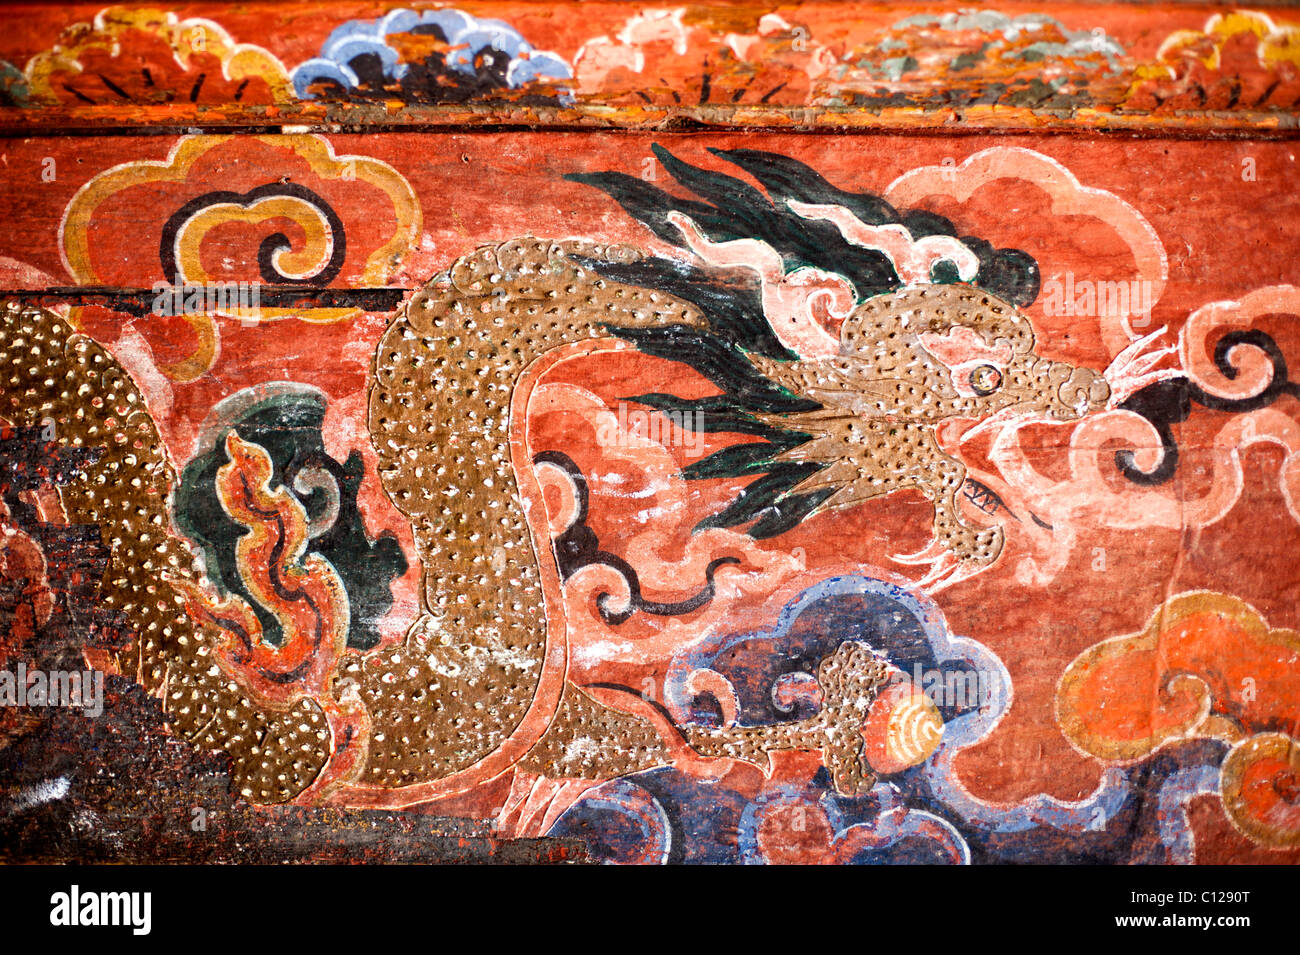 Bhutanese temple art depicting the Thunder Dragon, representative of the Kingdom of Bhutan - Stock Image